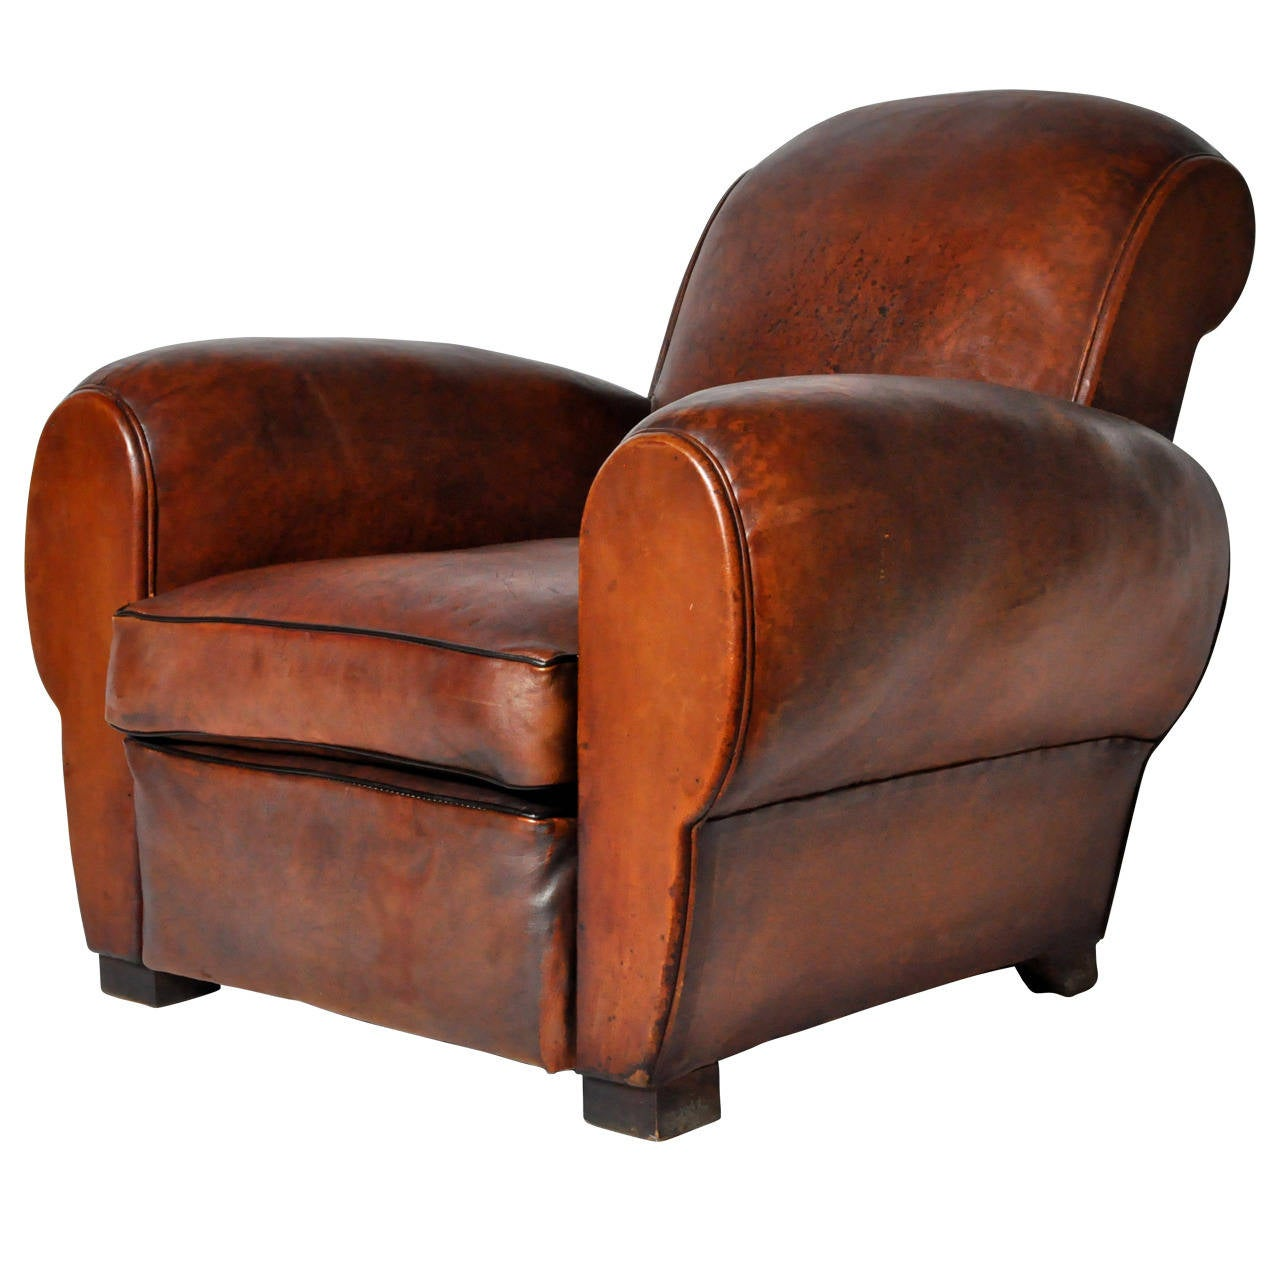 Club Chair Leather Vintage French Leather Club Chair At 1stdibs